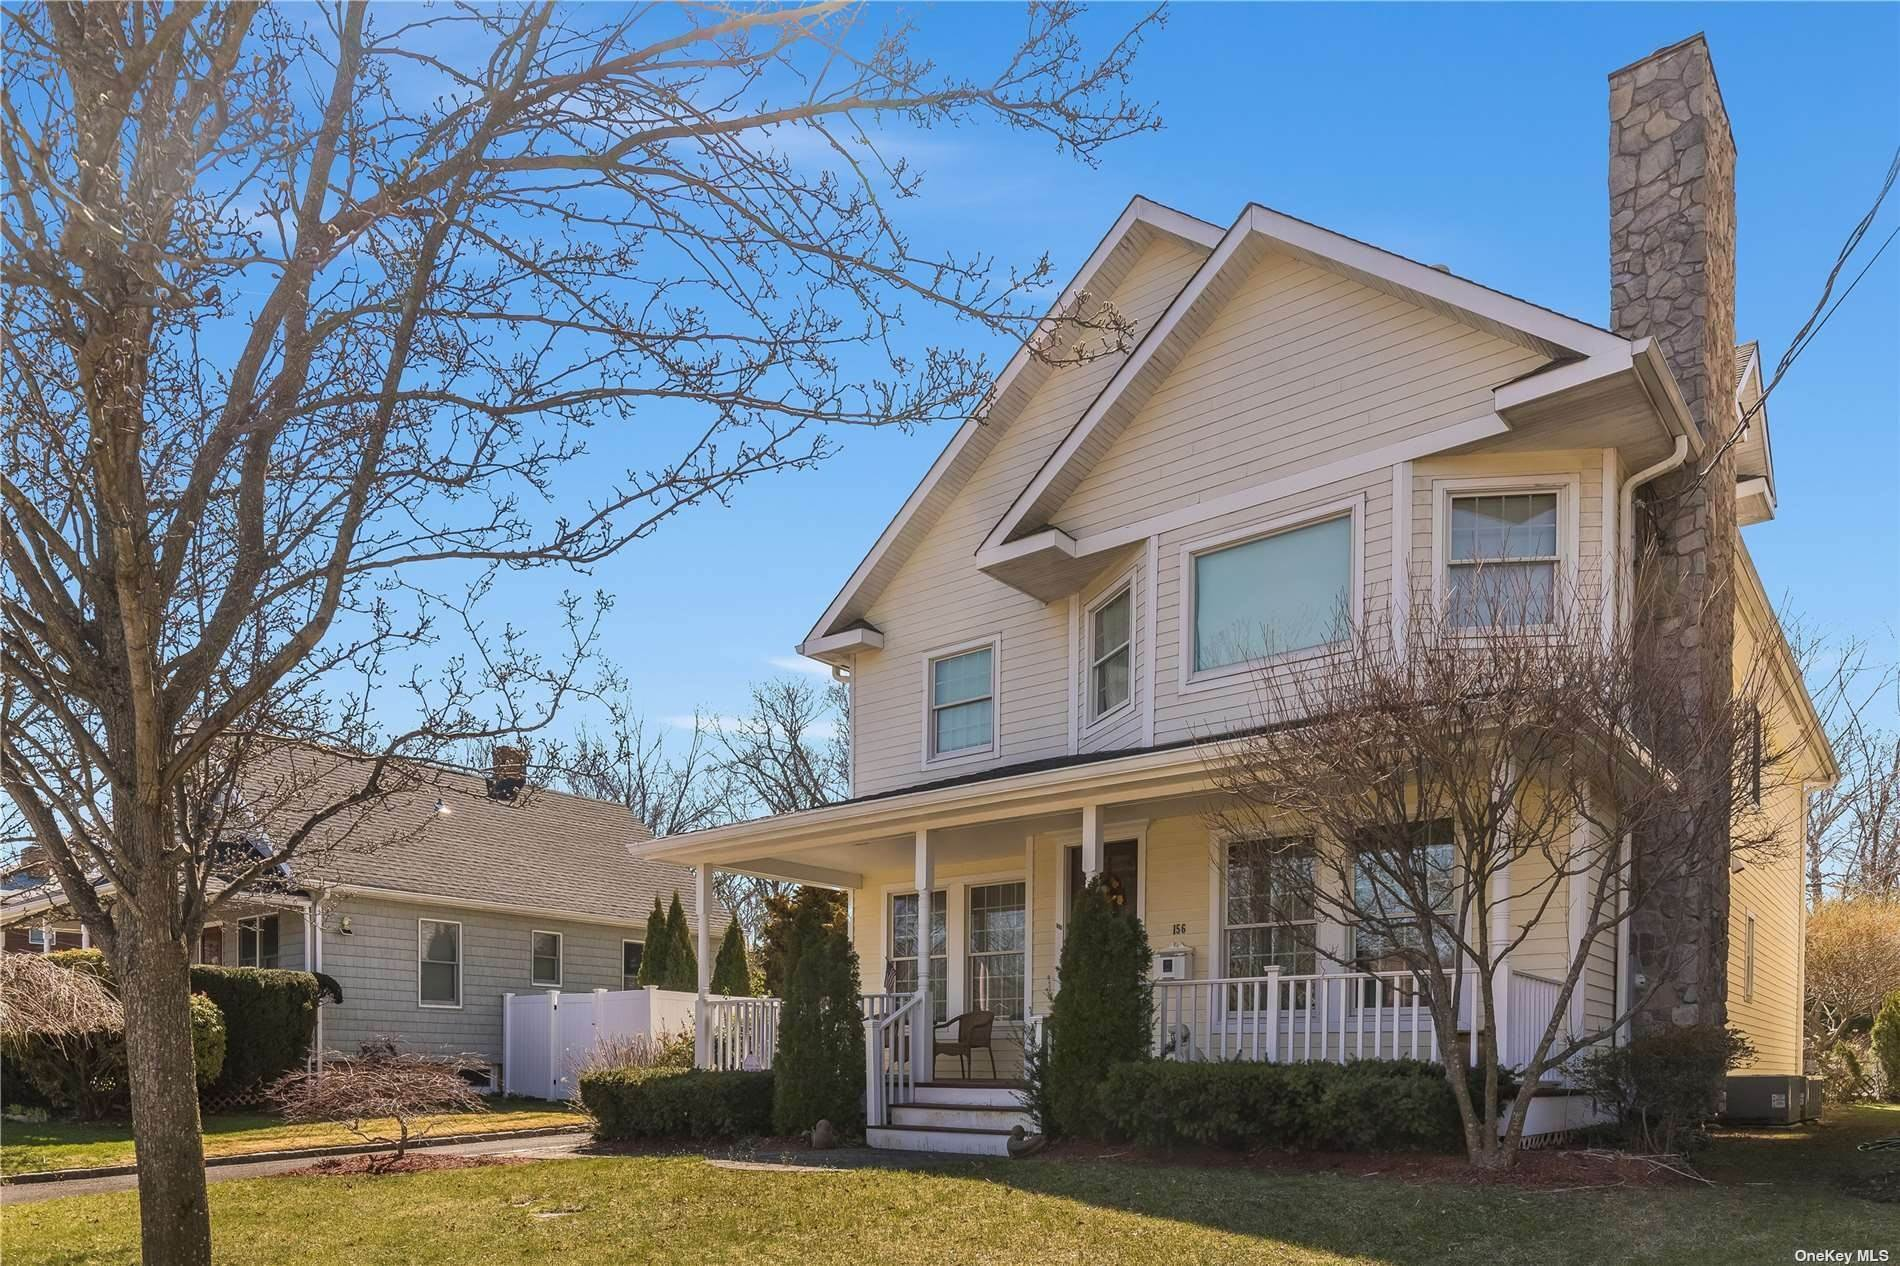 Residential for Sale at 156 Summers Street Oyster Bay, New York 11771 United States